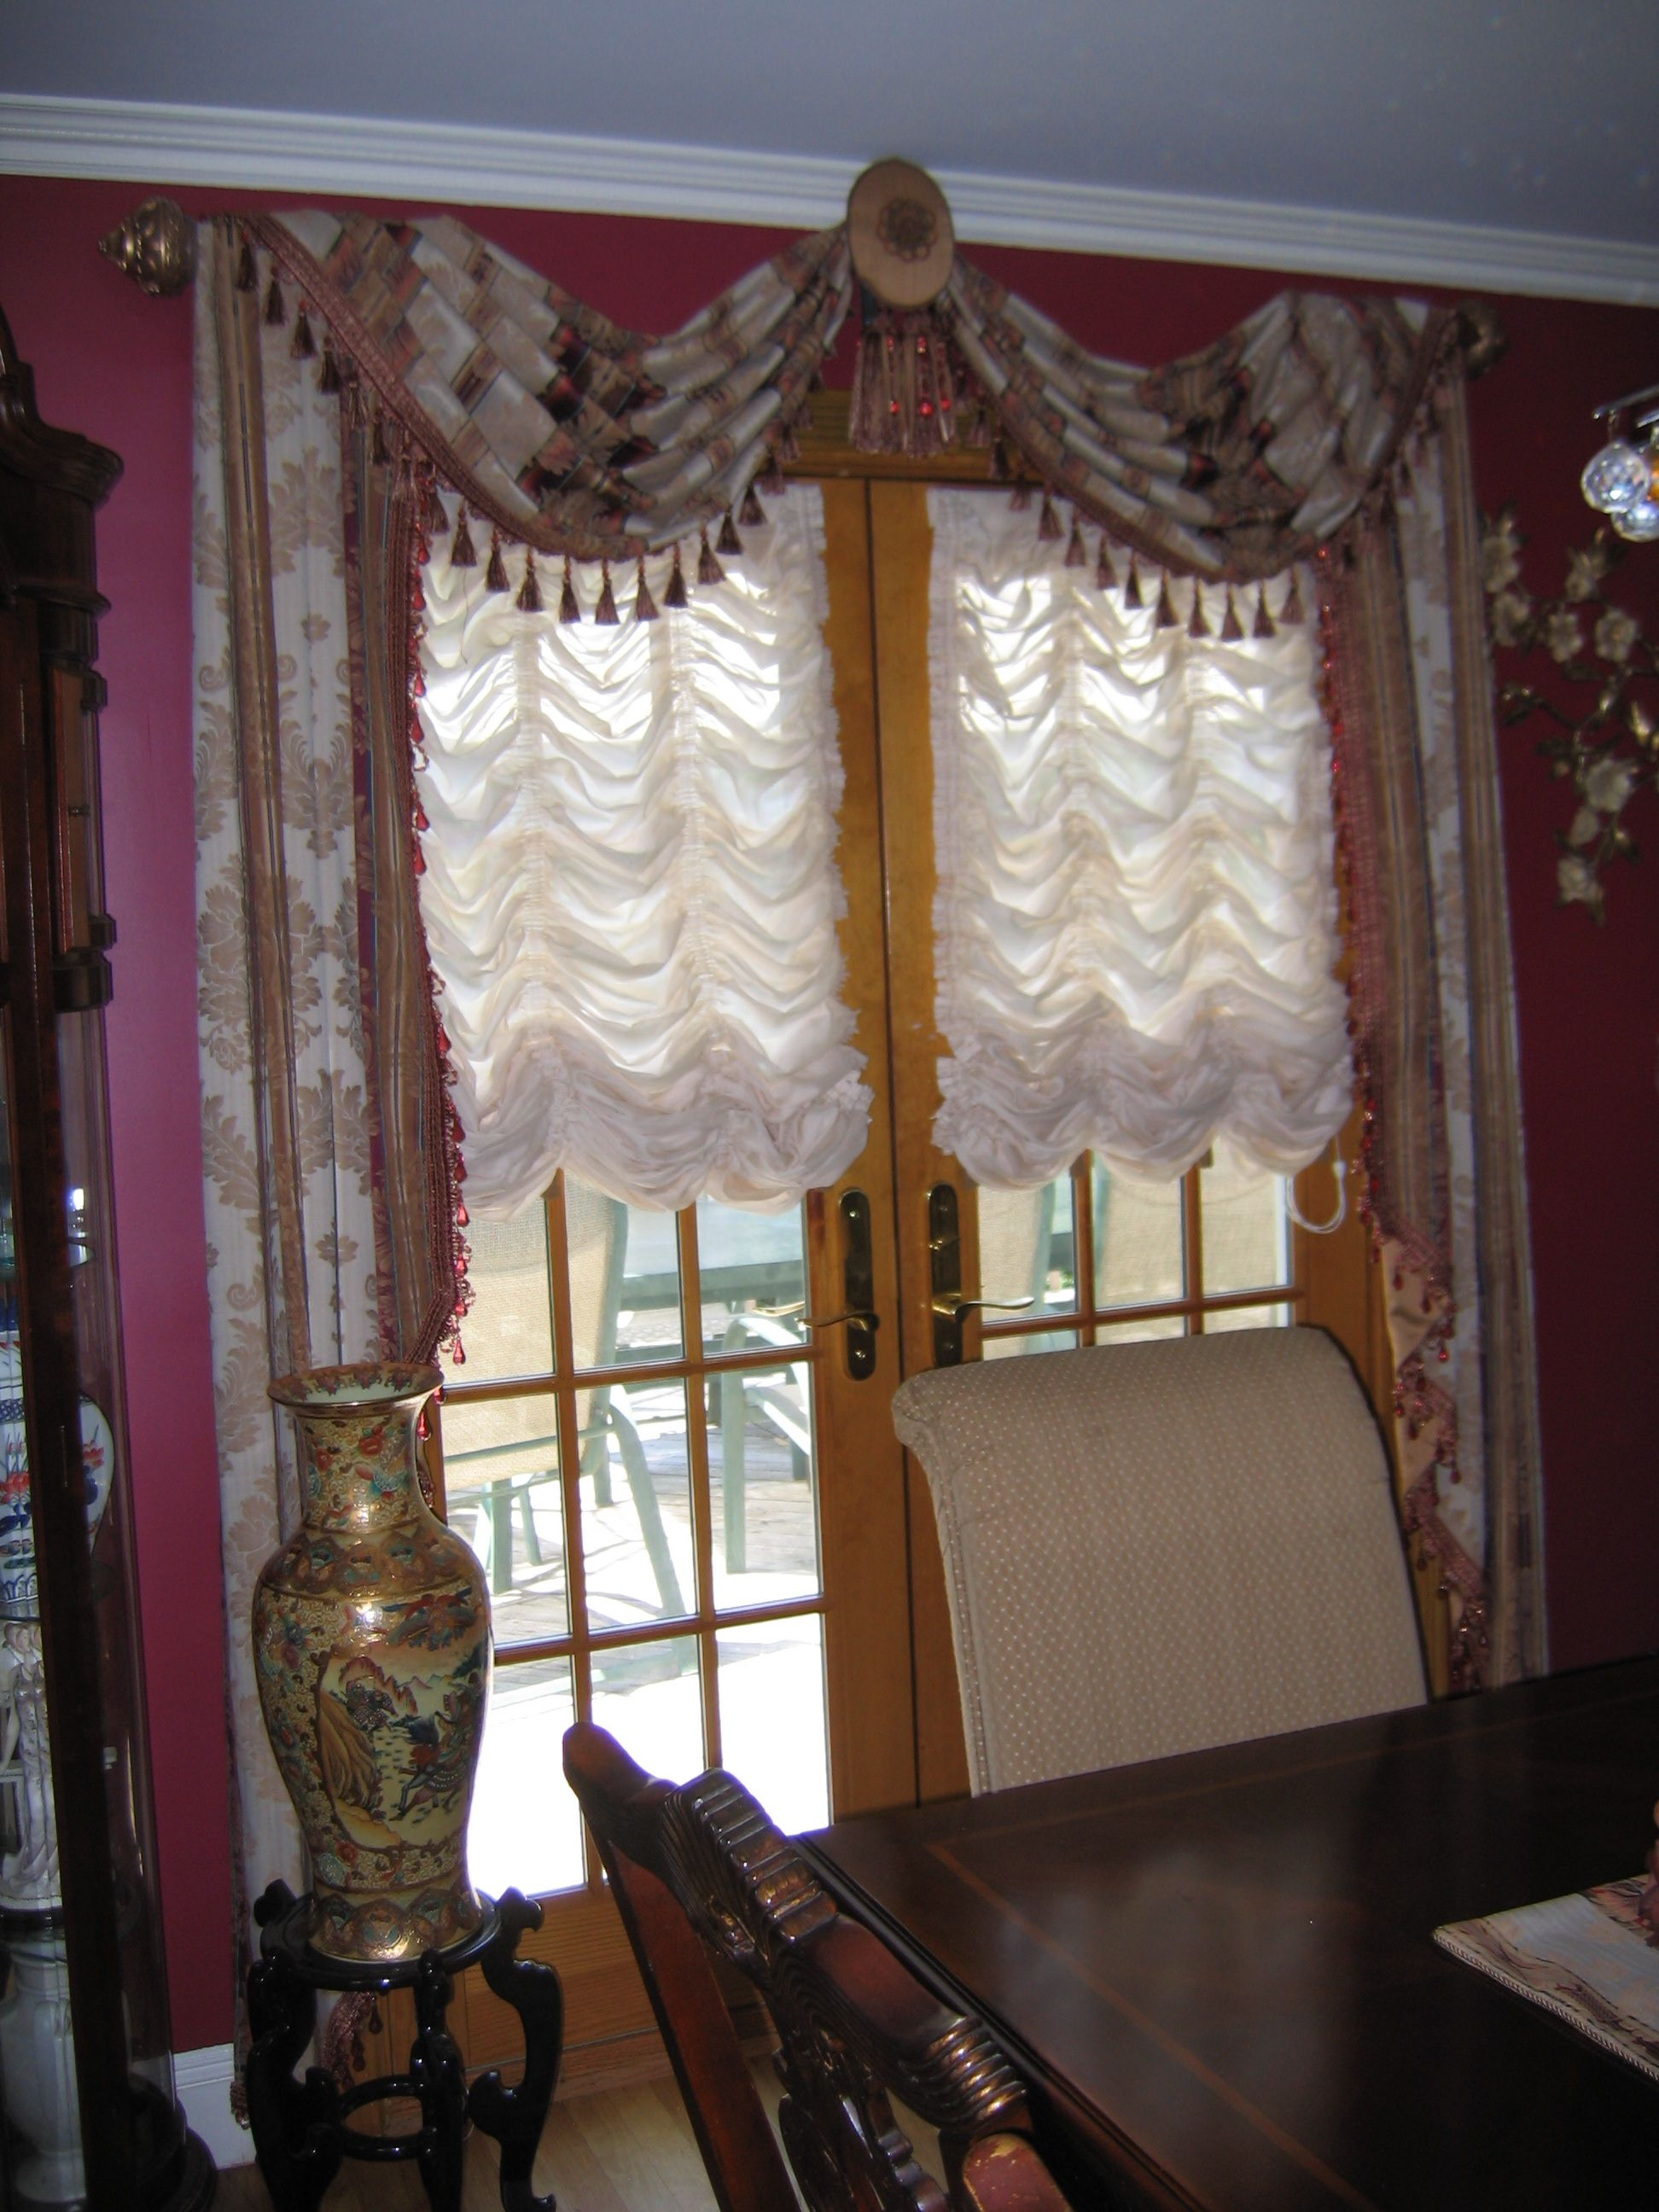 Throw Style Swags Jabots On French Door Over Austrian Shades